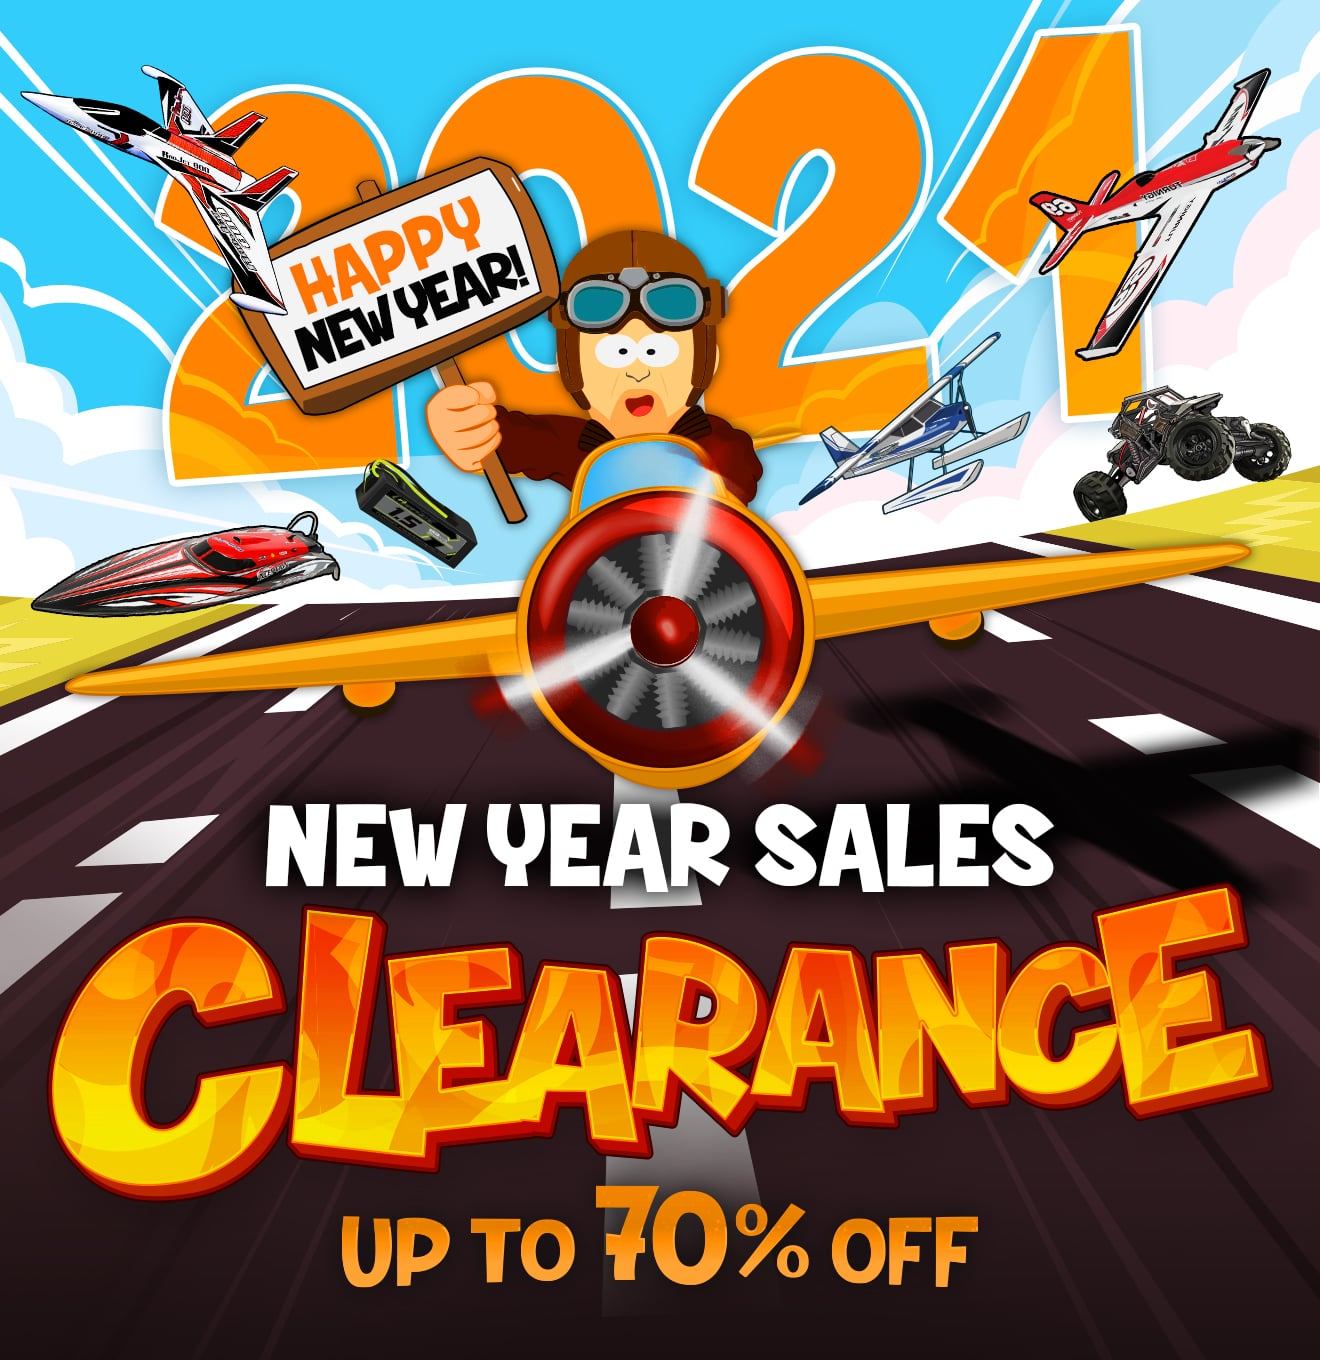 New Year Sales Clearance Up To 70% OFF - Shop Now!